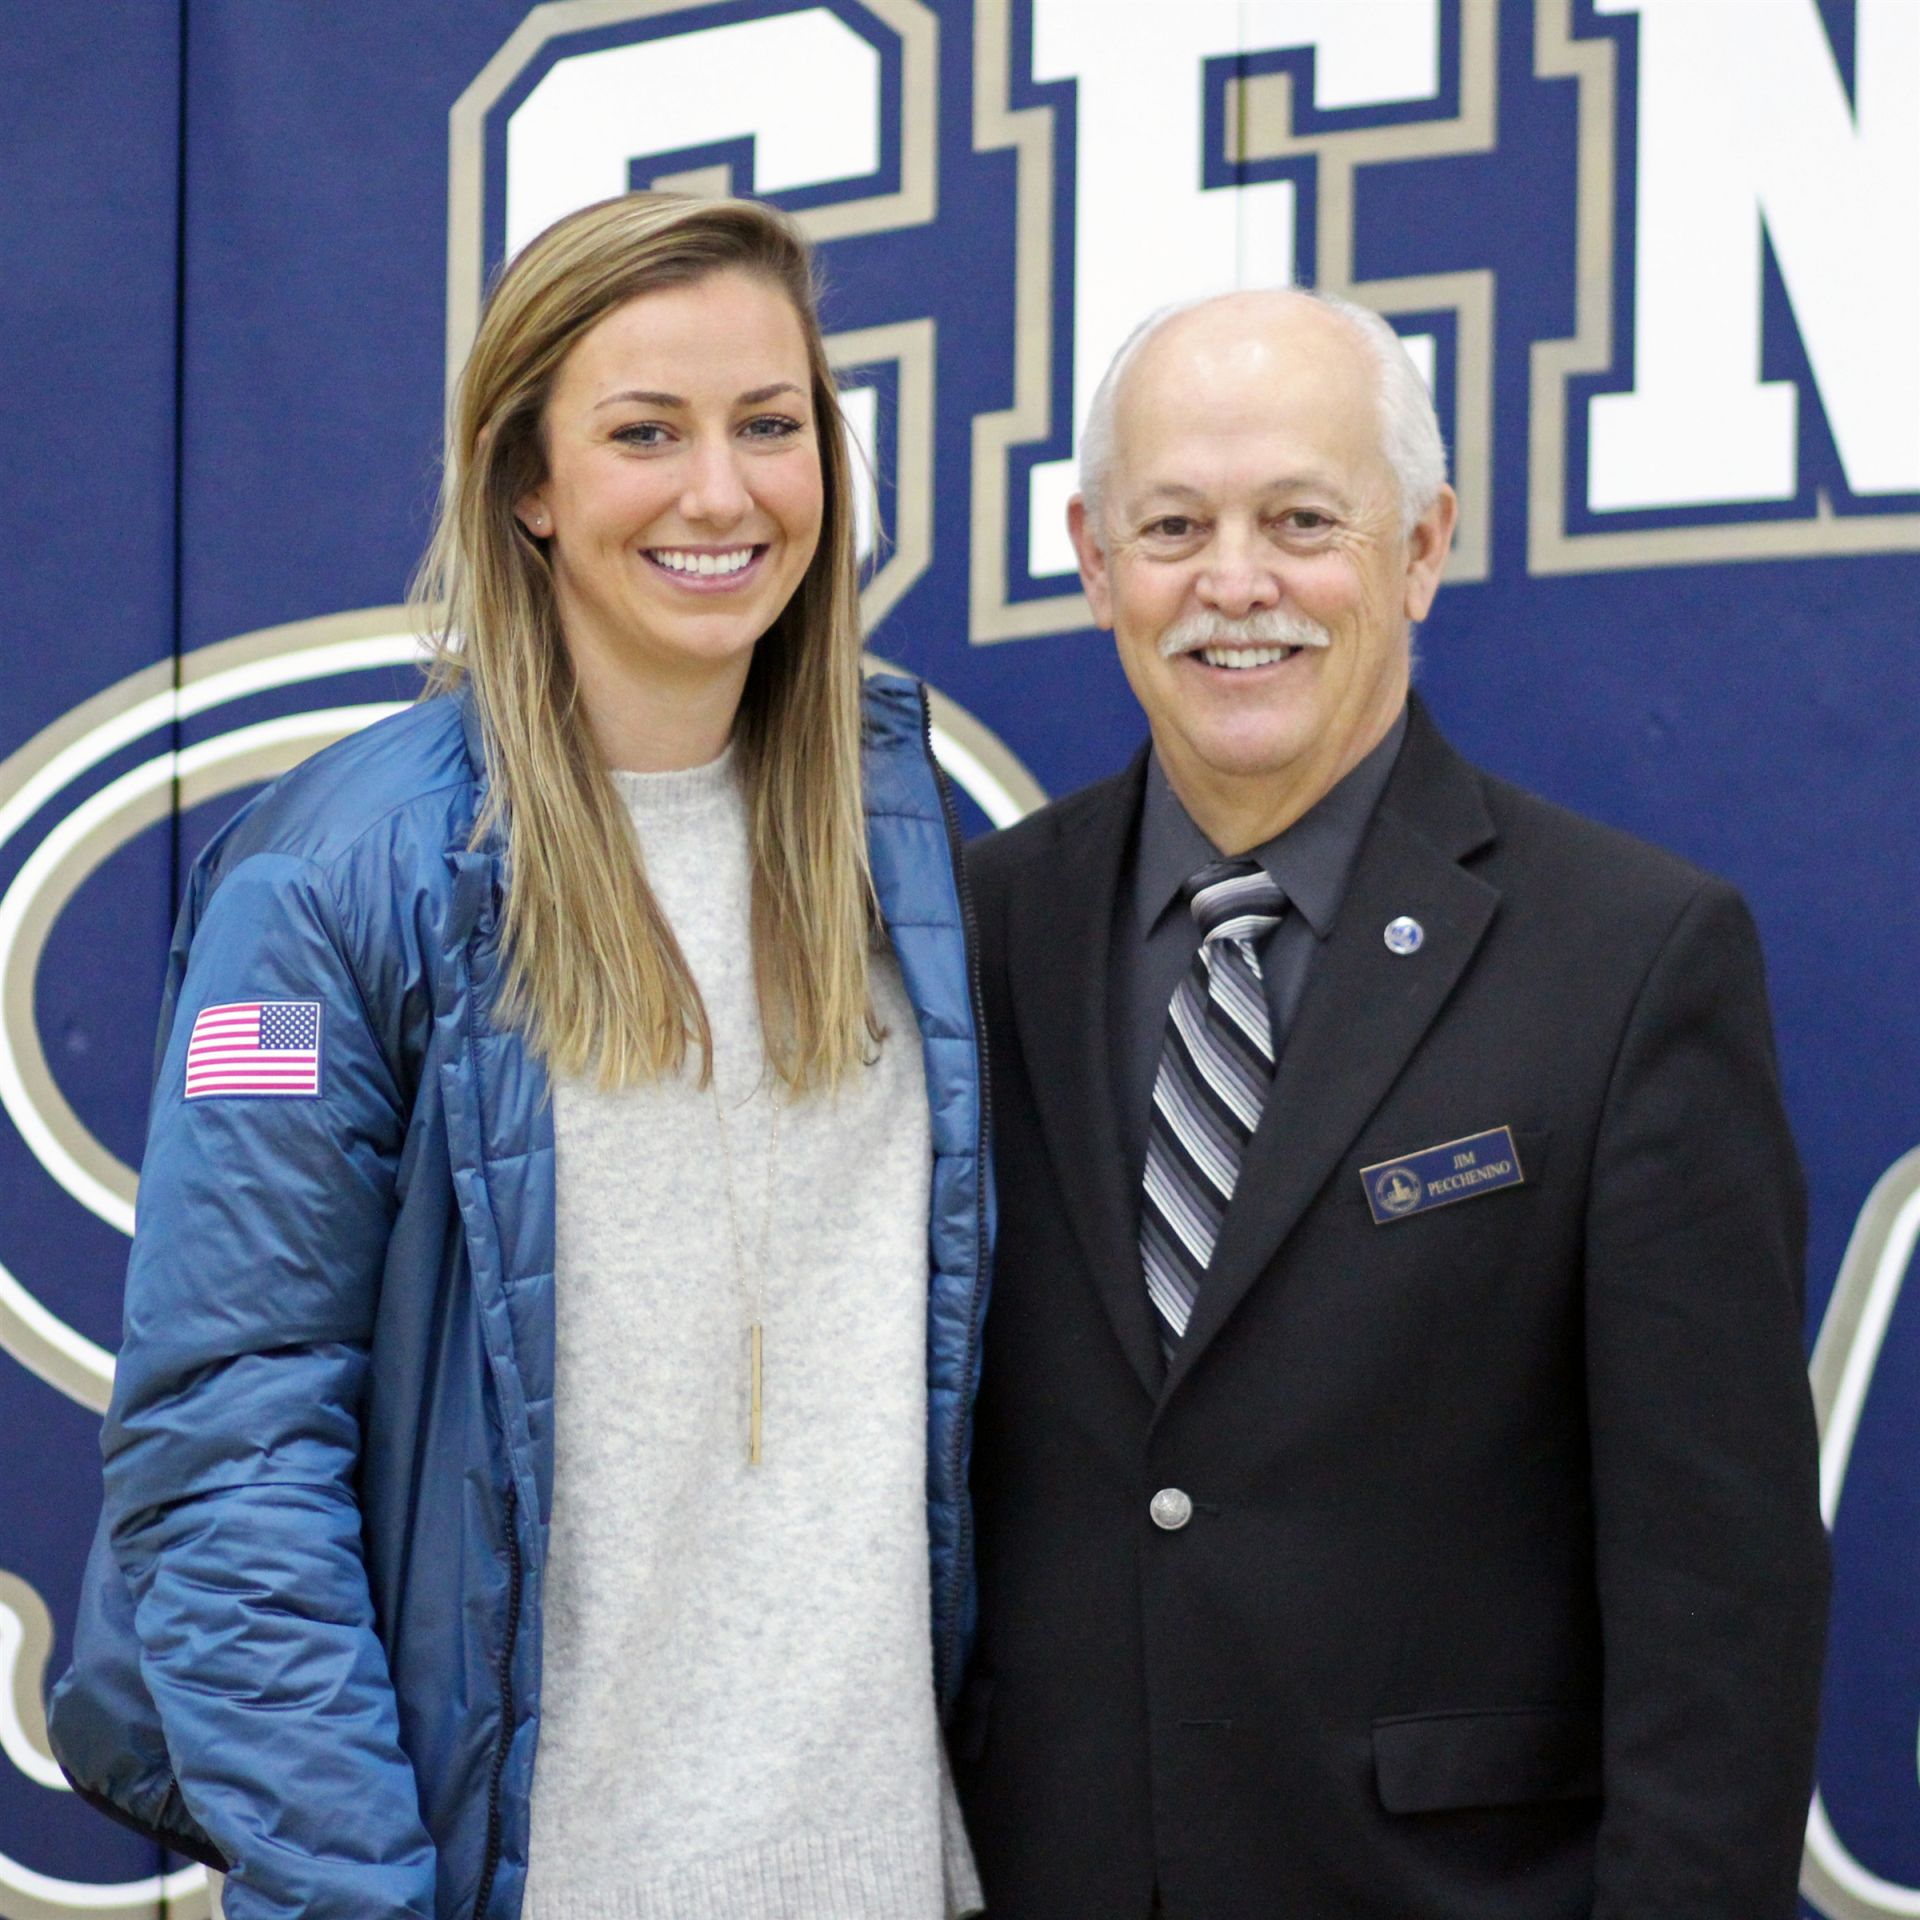 Kendall Wesenberg '08, 2018 Winter Olympian and our Career Day 2018 Keynote speaker with CC President Mr. Pecchenino '72